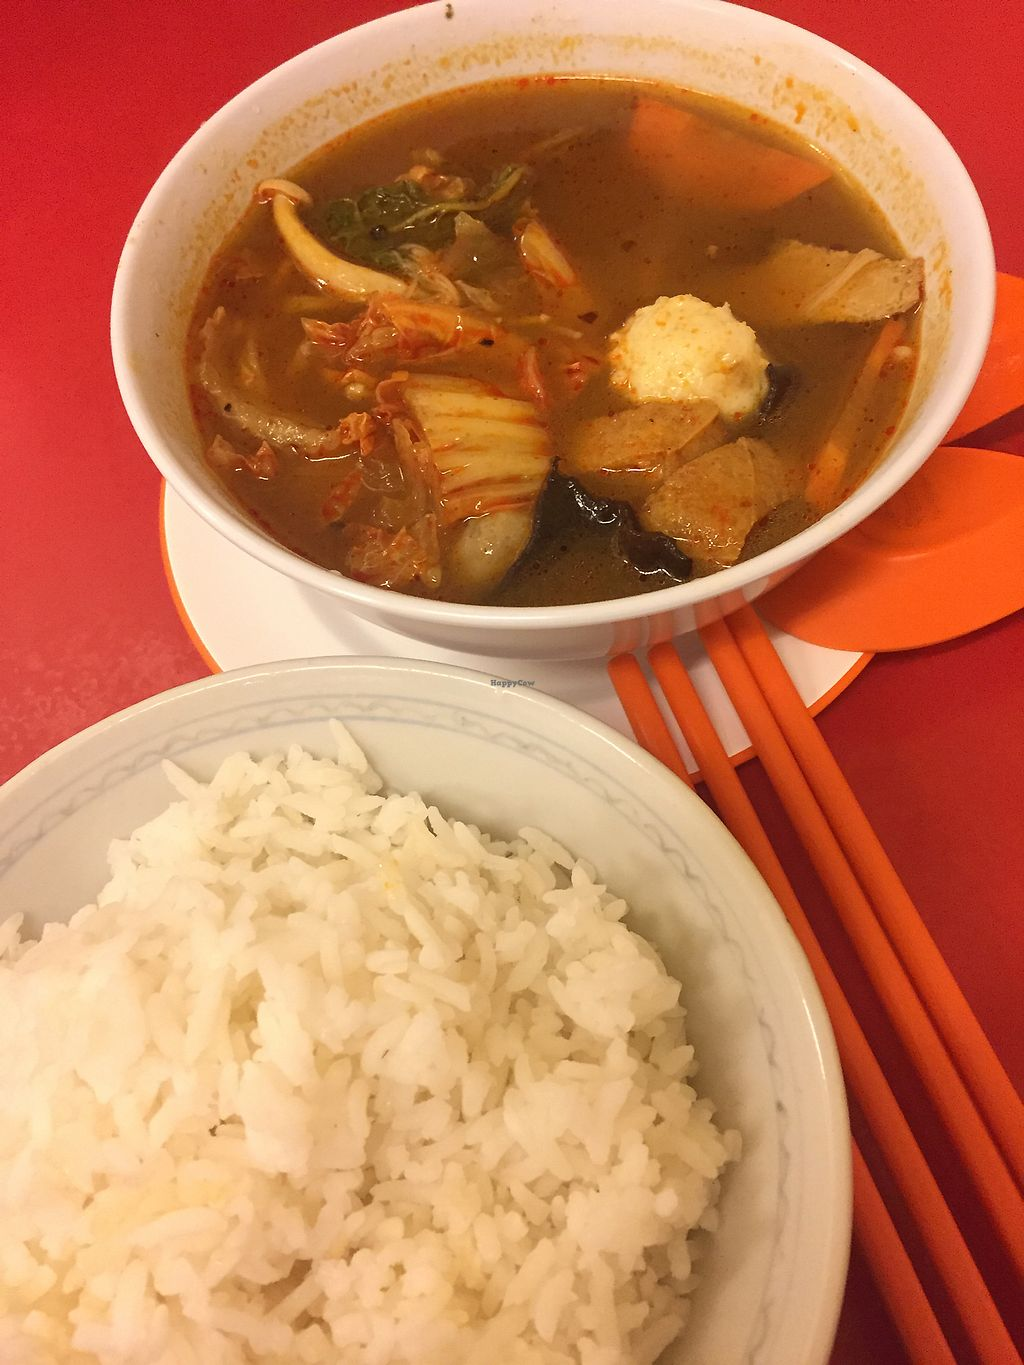 "Photo of Zhen Xiang Zhai  by <a href=""/members/profile/JanetLow"">JanetLow</a> <br/>Tomyam soup with white rice, super yummy! <br/> October 12, 2017  - <a href='/contact/abuse/image/19533/314398'>Report</a>"